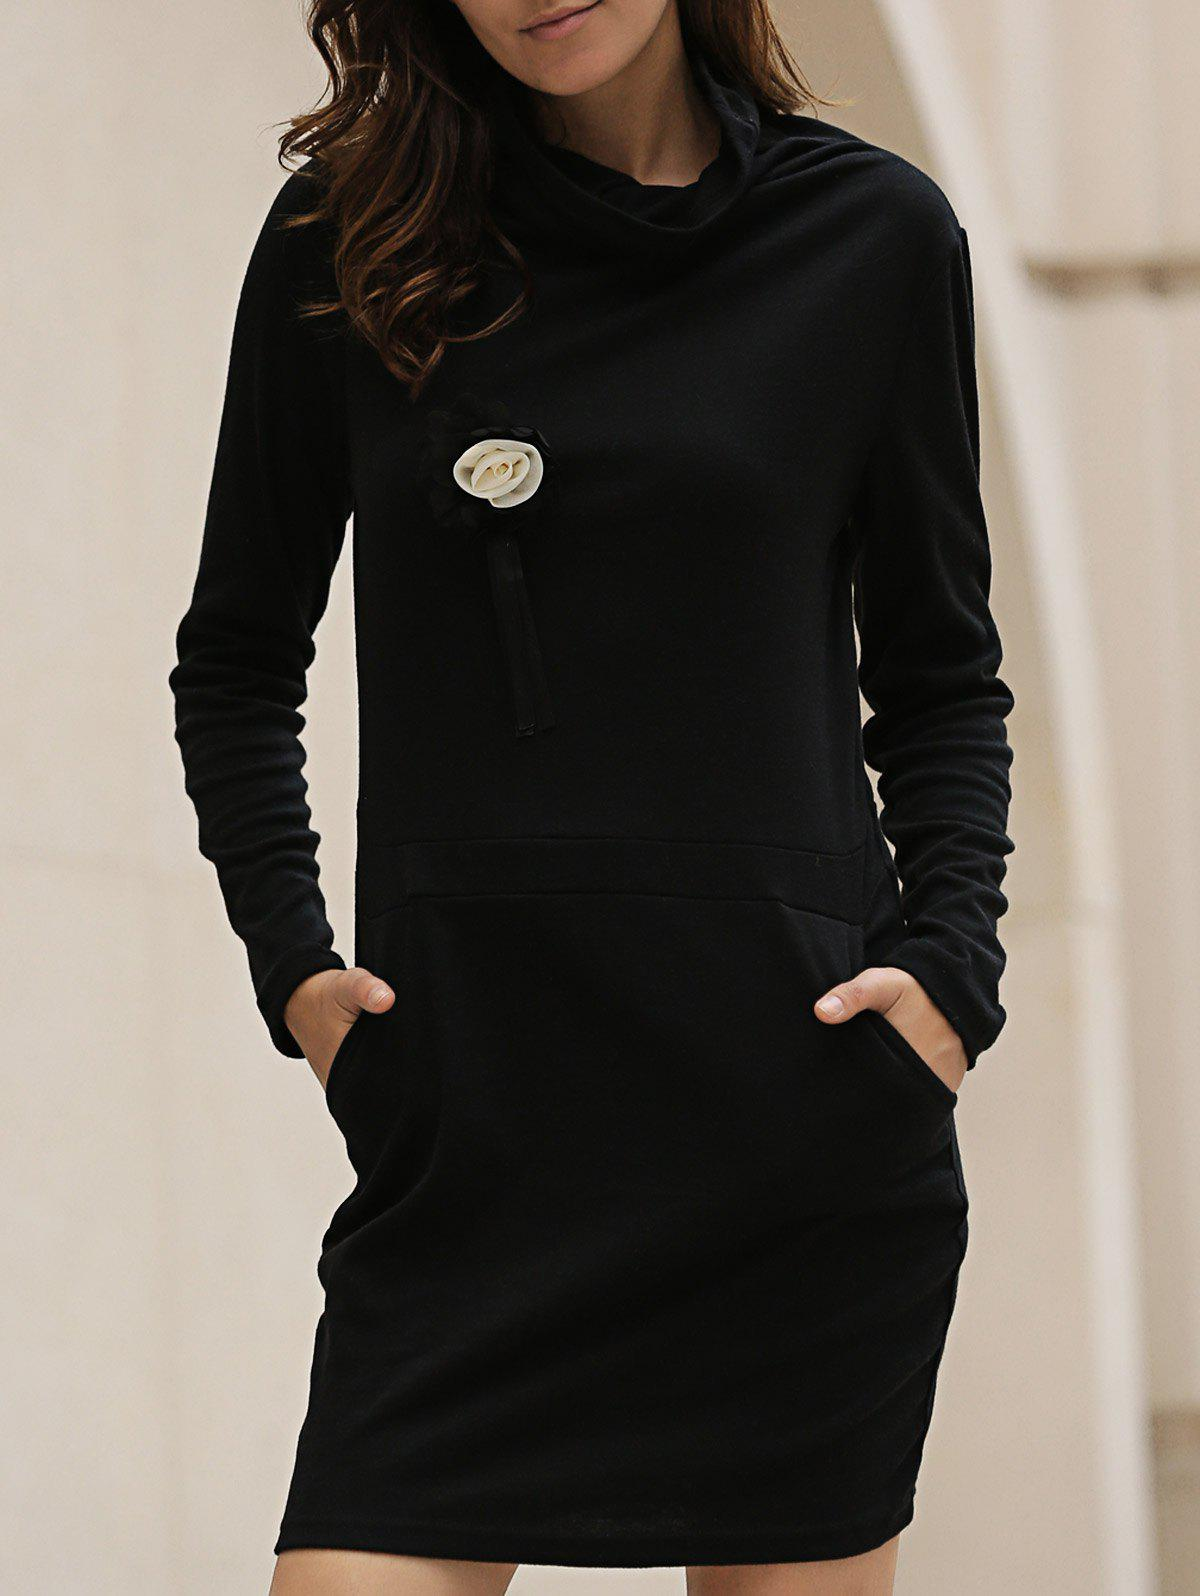 Stylish Long Sleeve Cowl Neck Bodycon Solid Color Women's Dress - BLACK M